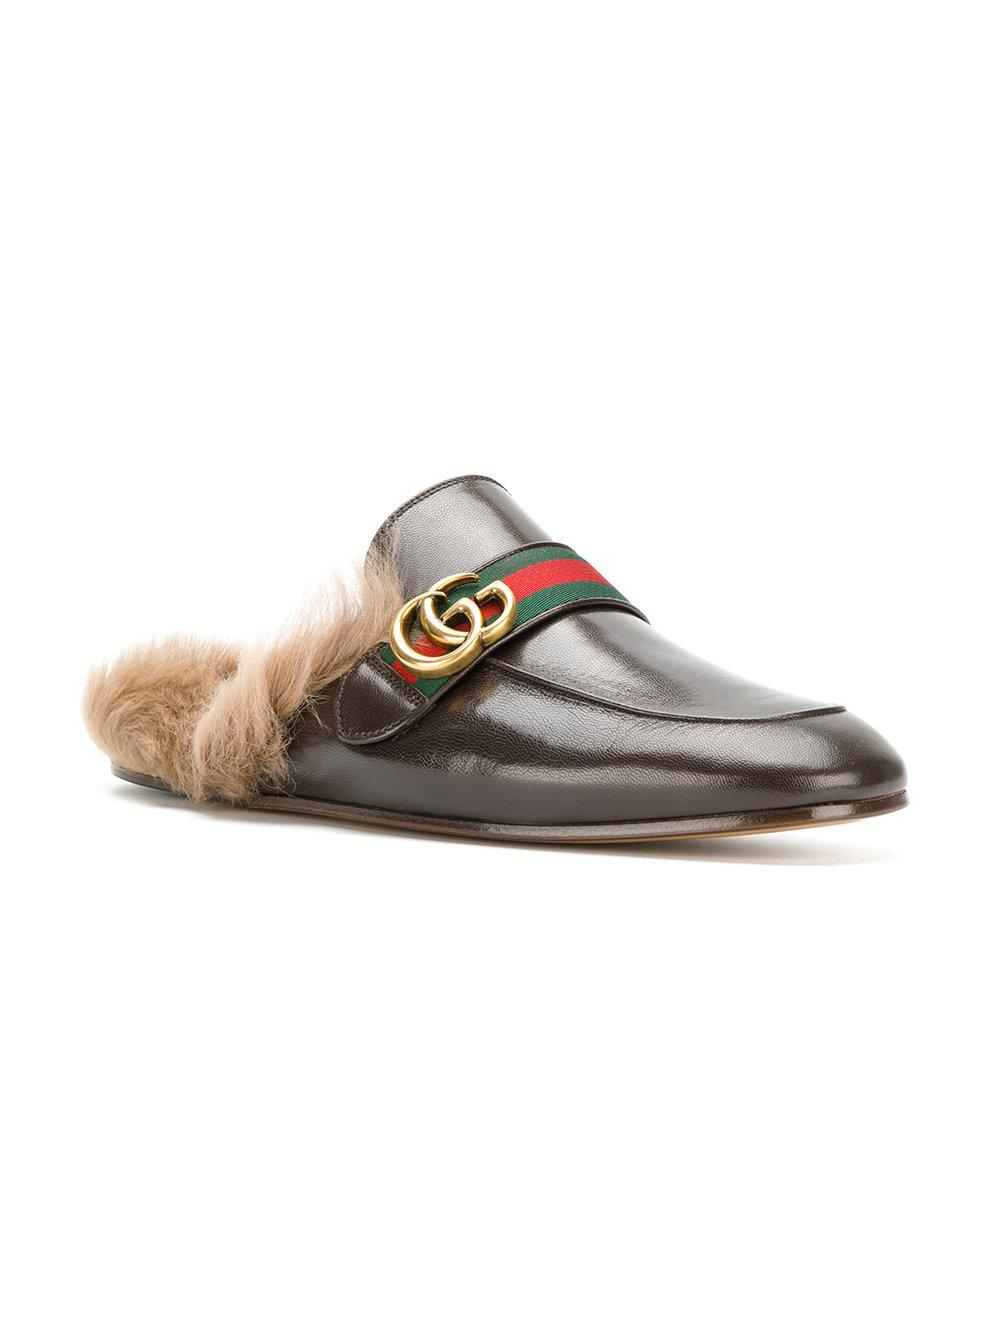 81b21267fa5 Lyst - Gucci Princetown Appliqué Slippers in Brown for Men